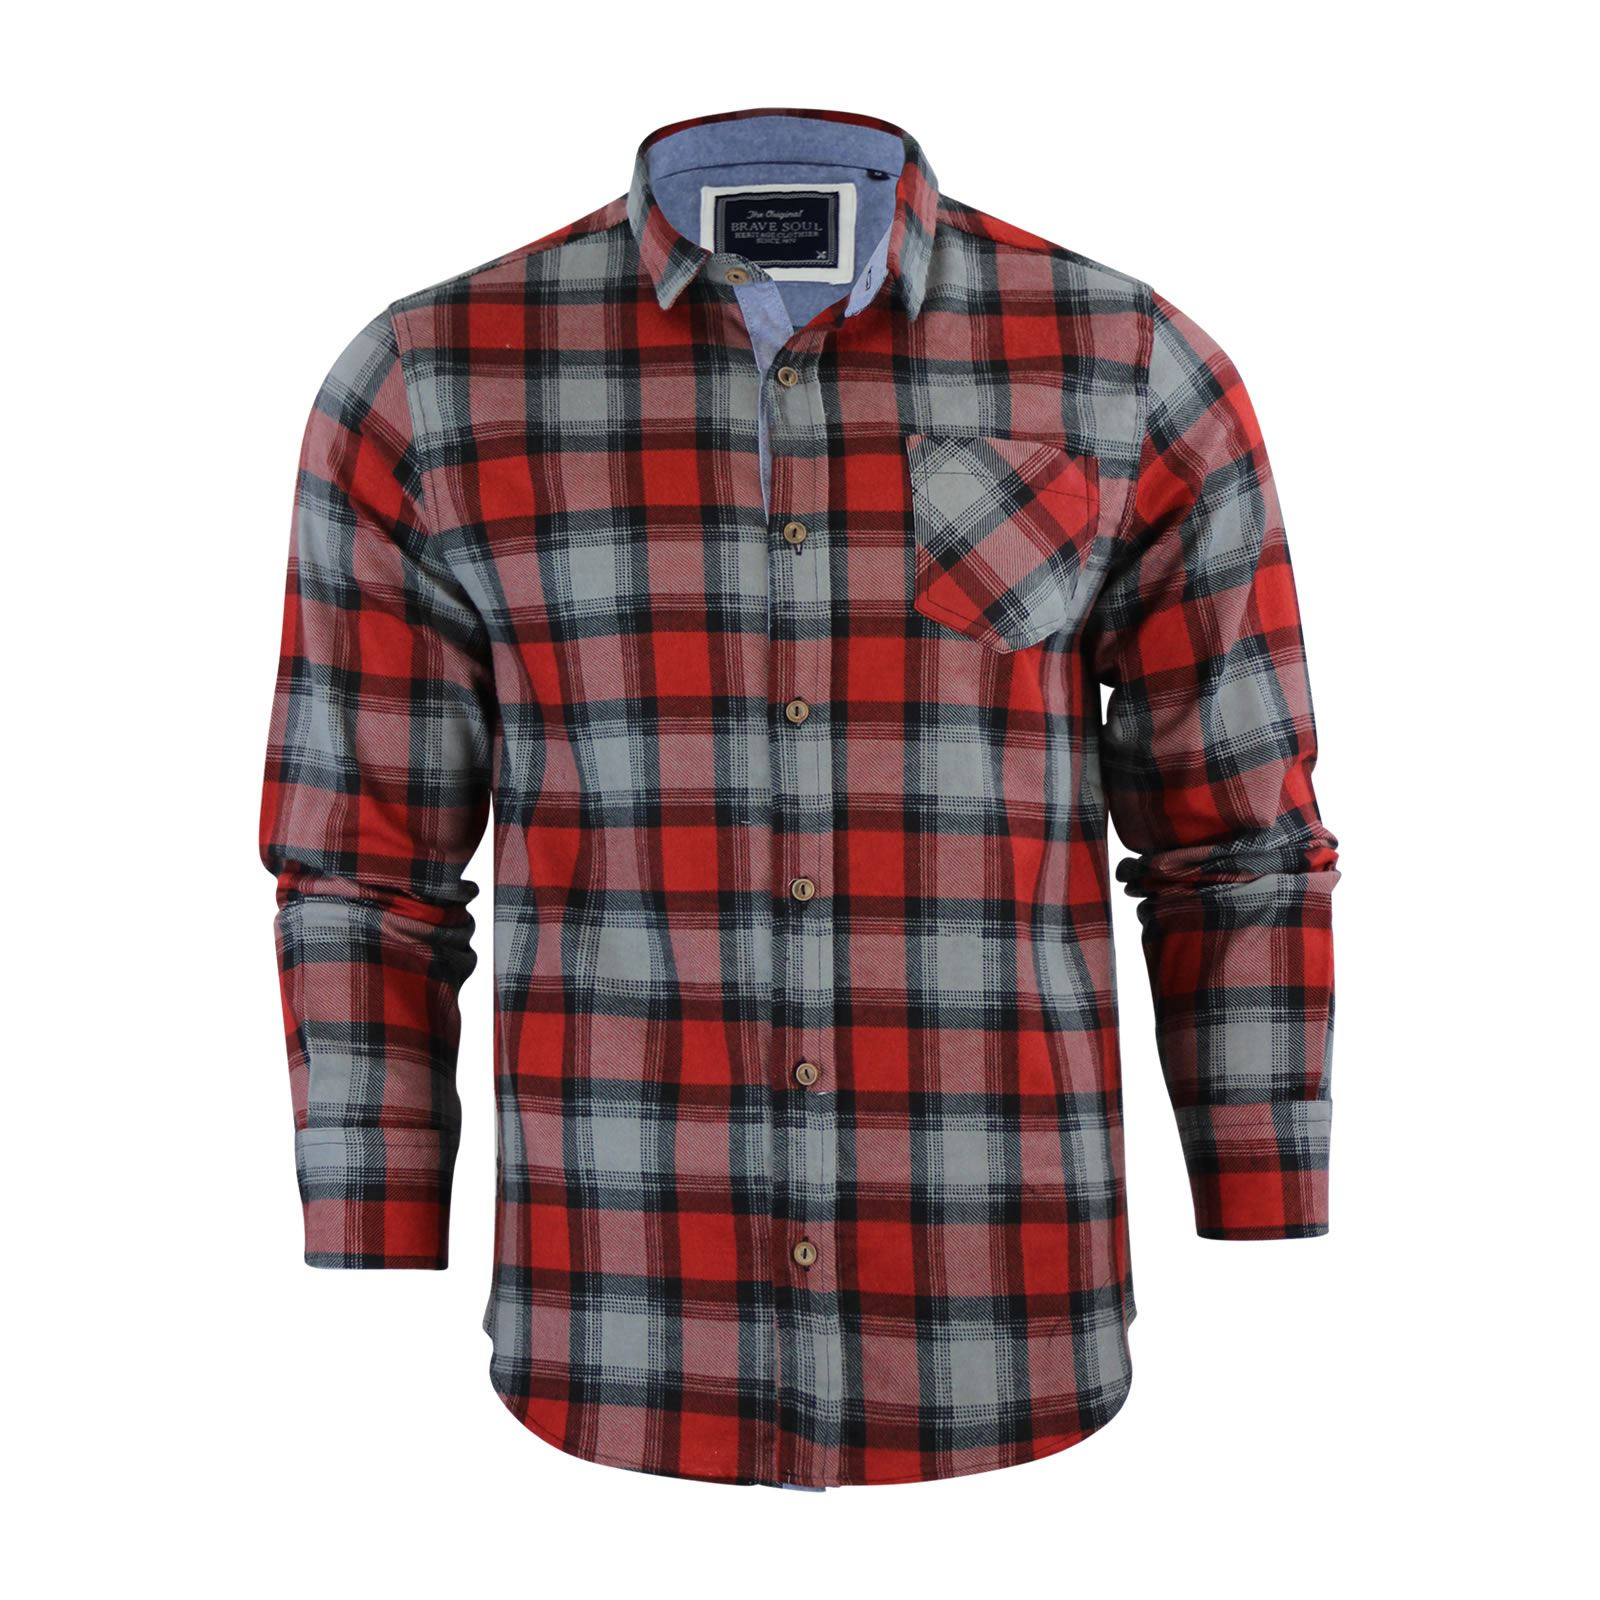 Brave-Soul-Mens-Check-Shirt-Flannel-Brushed-Cotton-Long-Sleeve-Casual-Top thumbnail 37